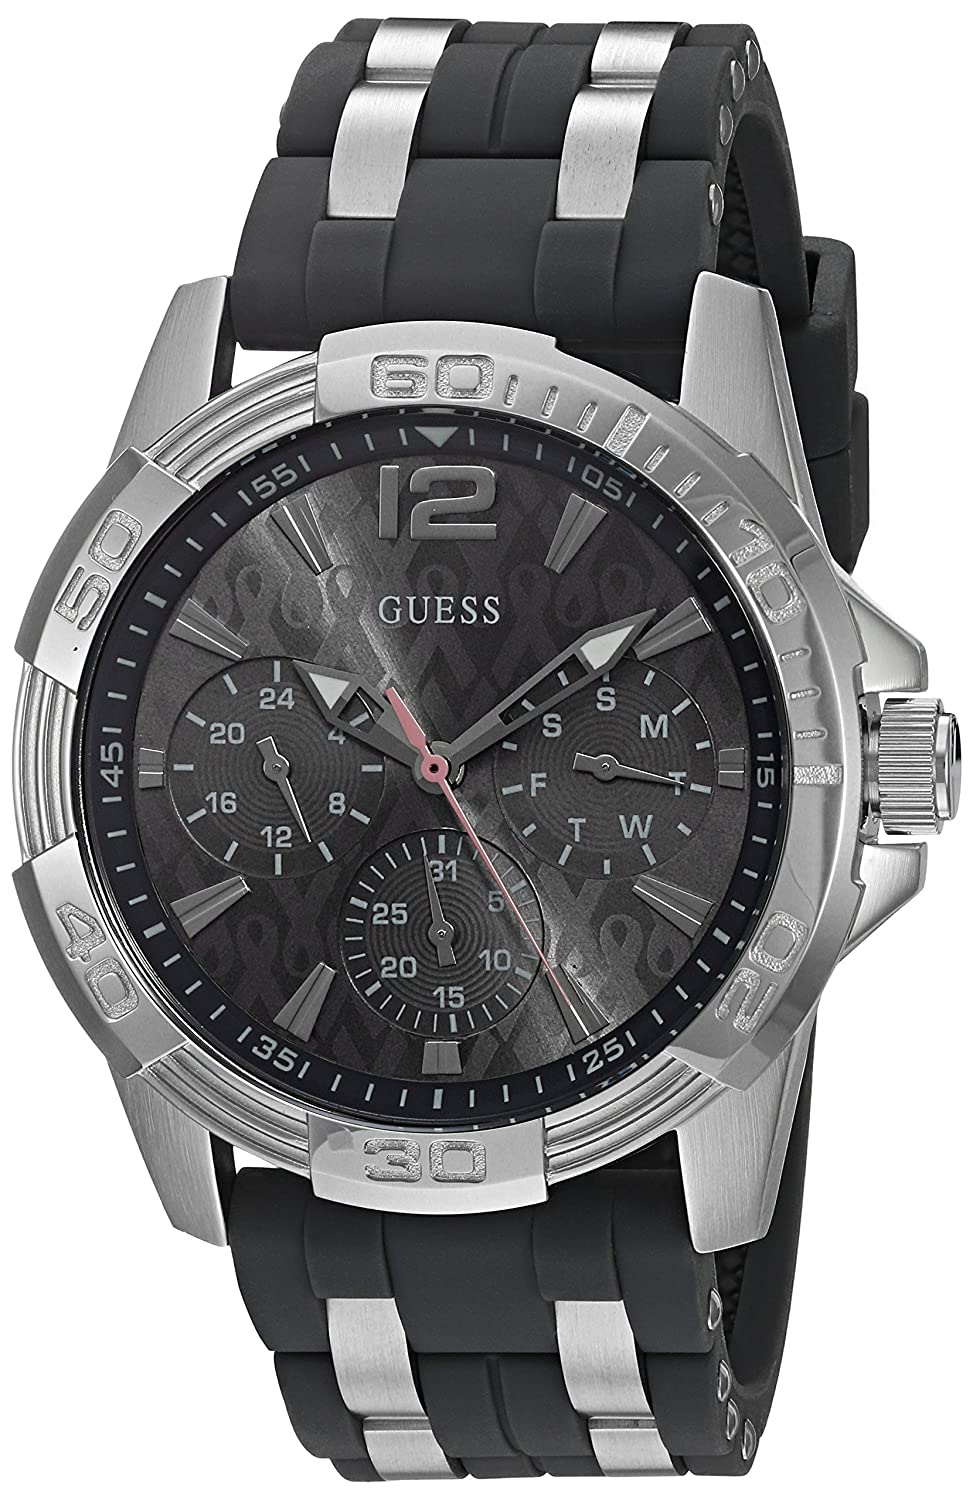 GUESS Men s U0032G7 Sporty Silver-Tone Stainless Steel Watch with Multi-function Dial and Strap Buckle